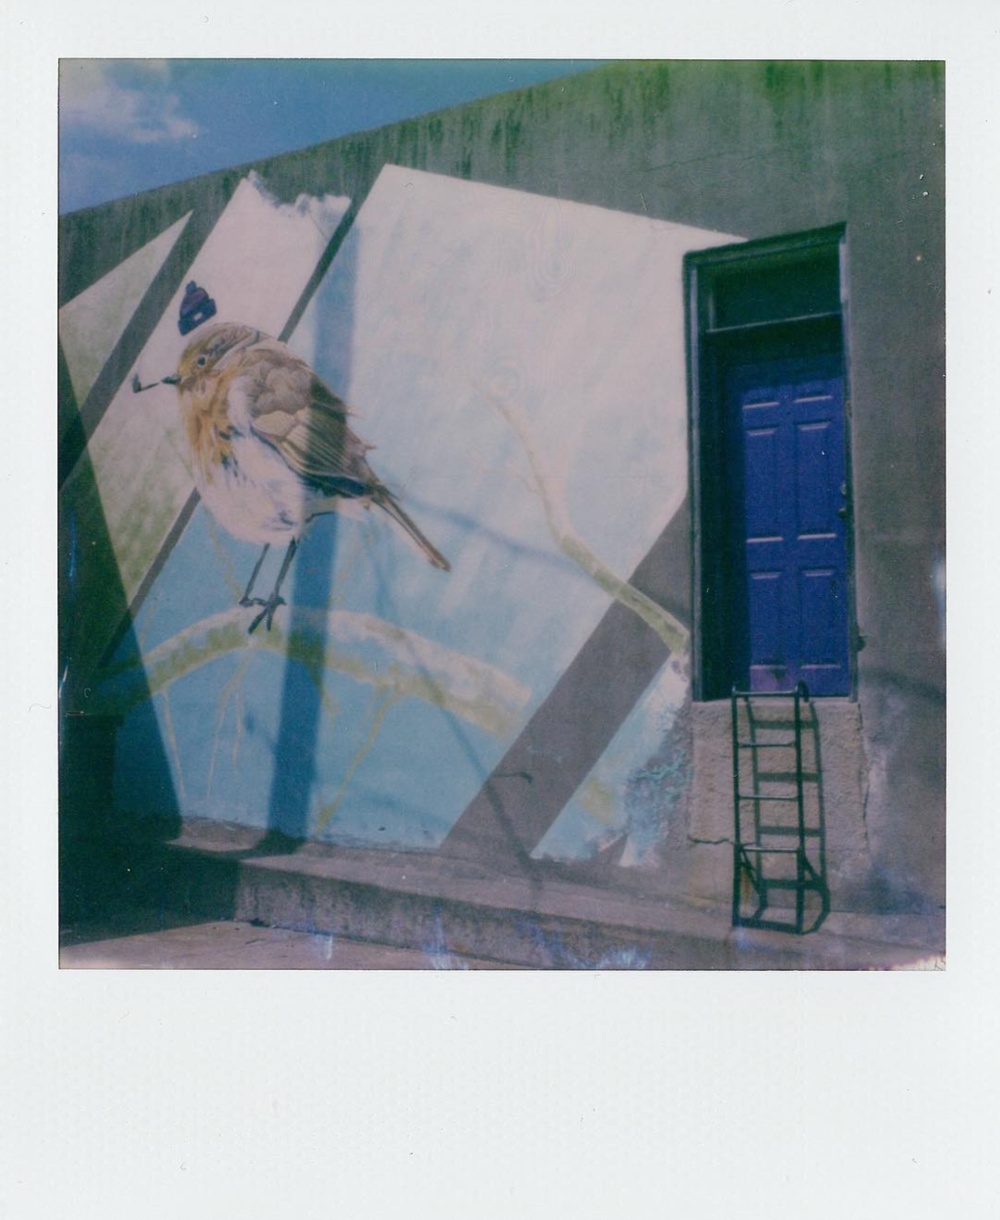 New Denton-based instant film account, @instantdenton, snapped this shot of the purple door.